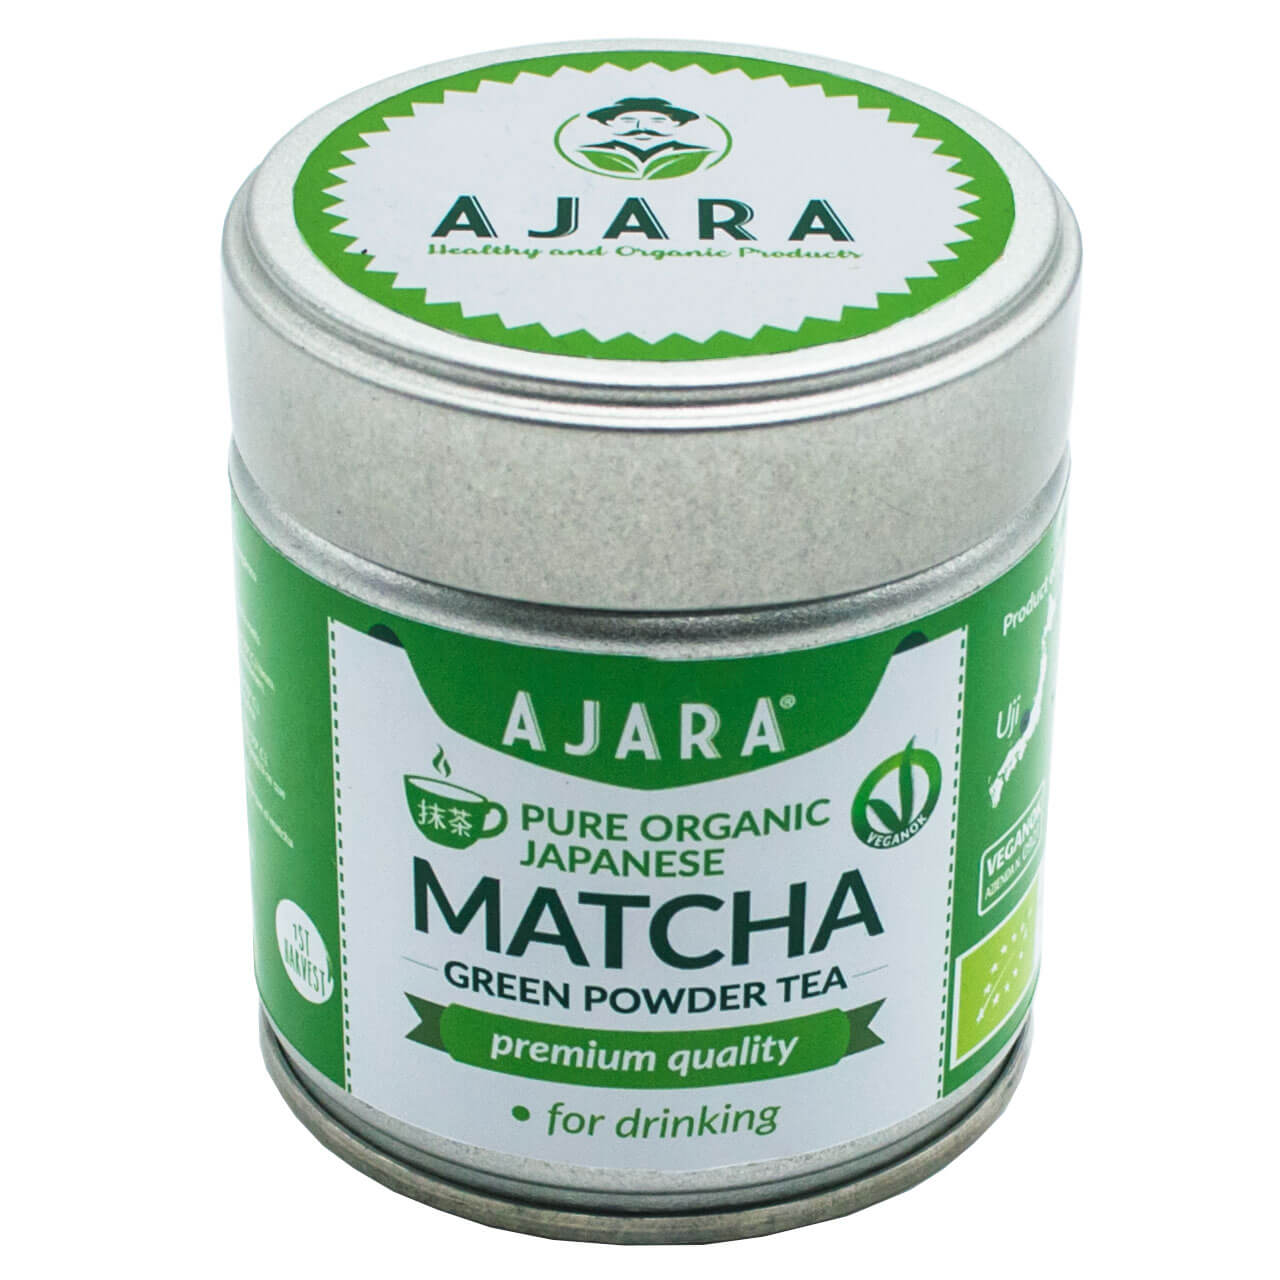 Powdered green tea matcha